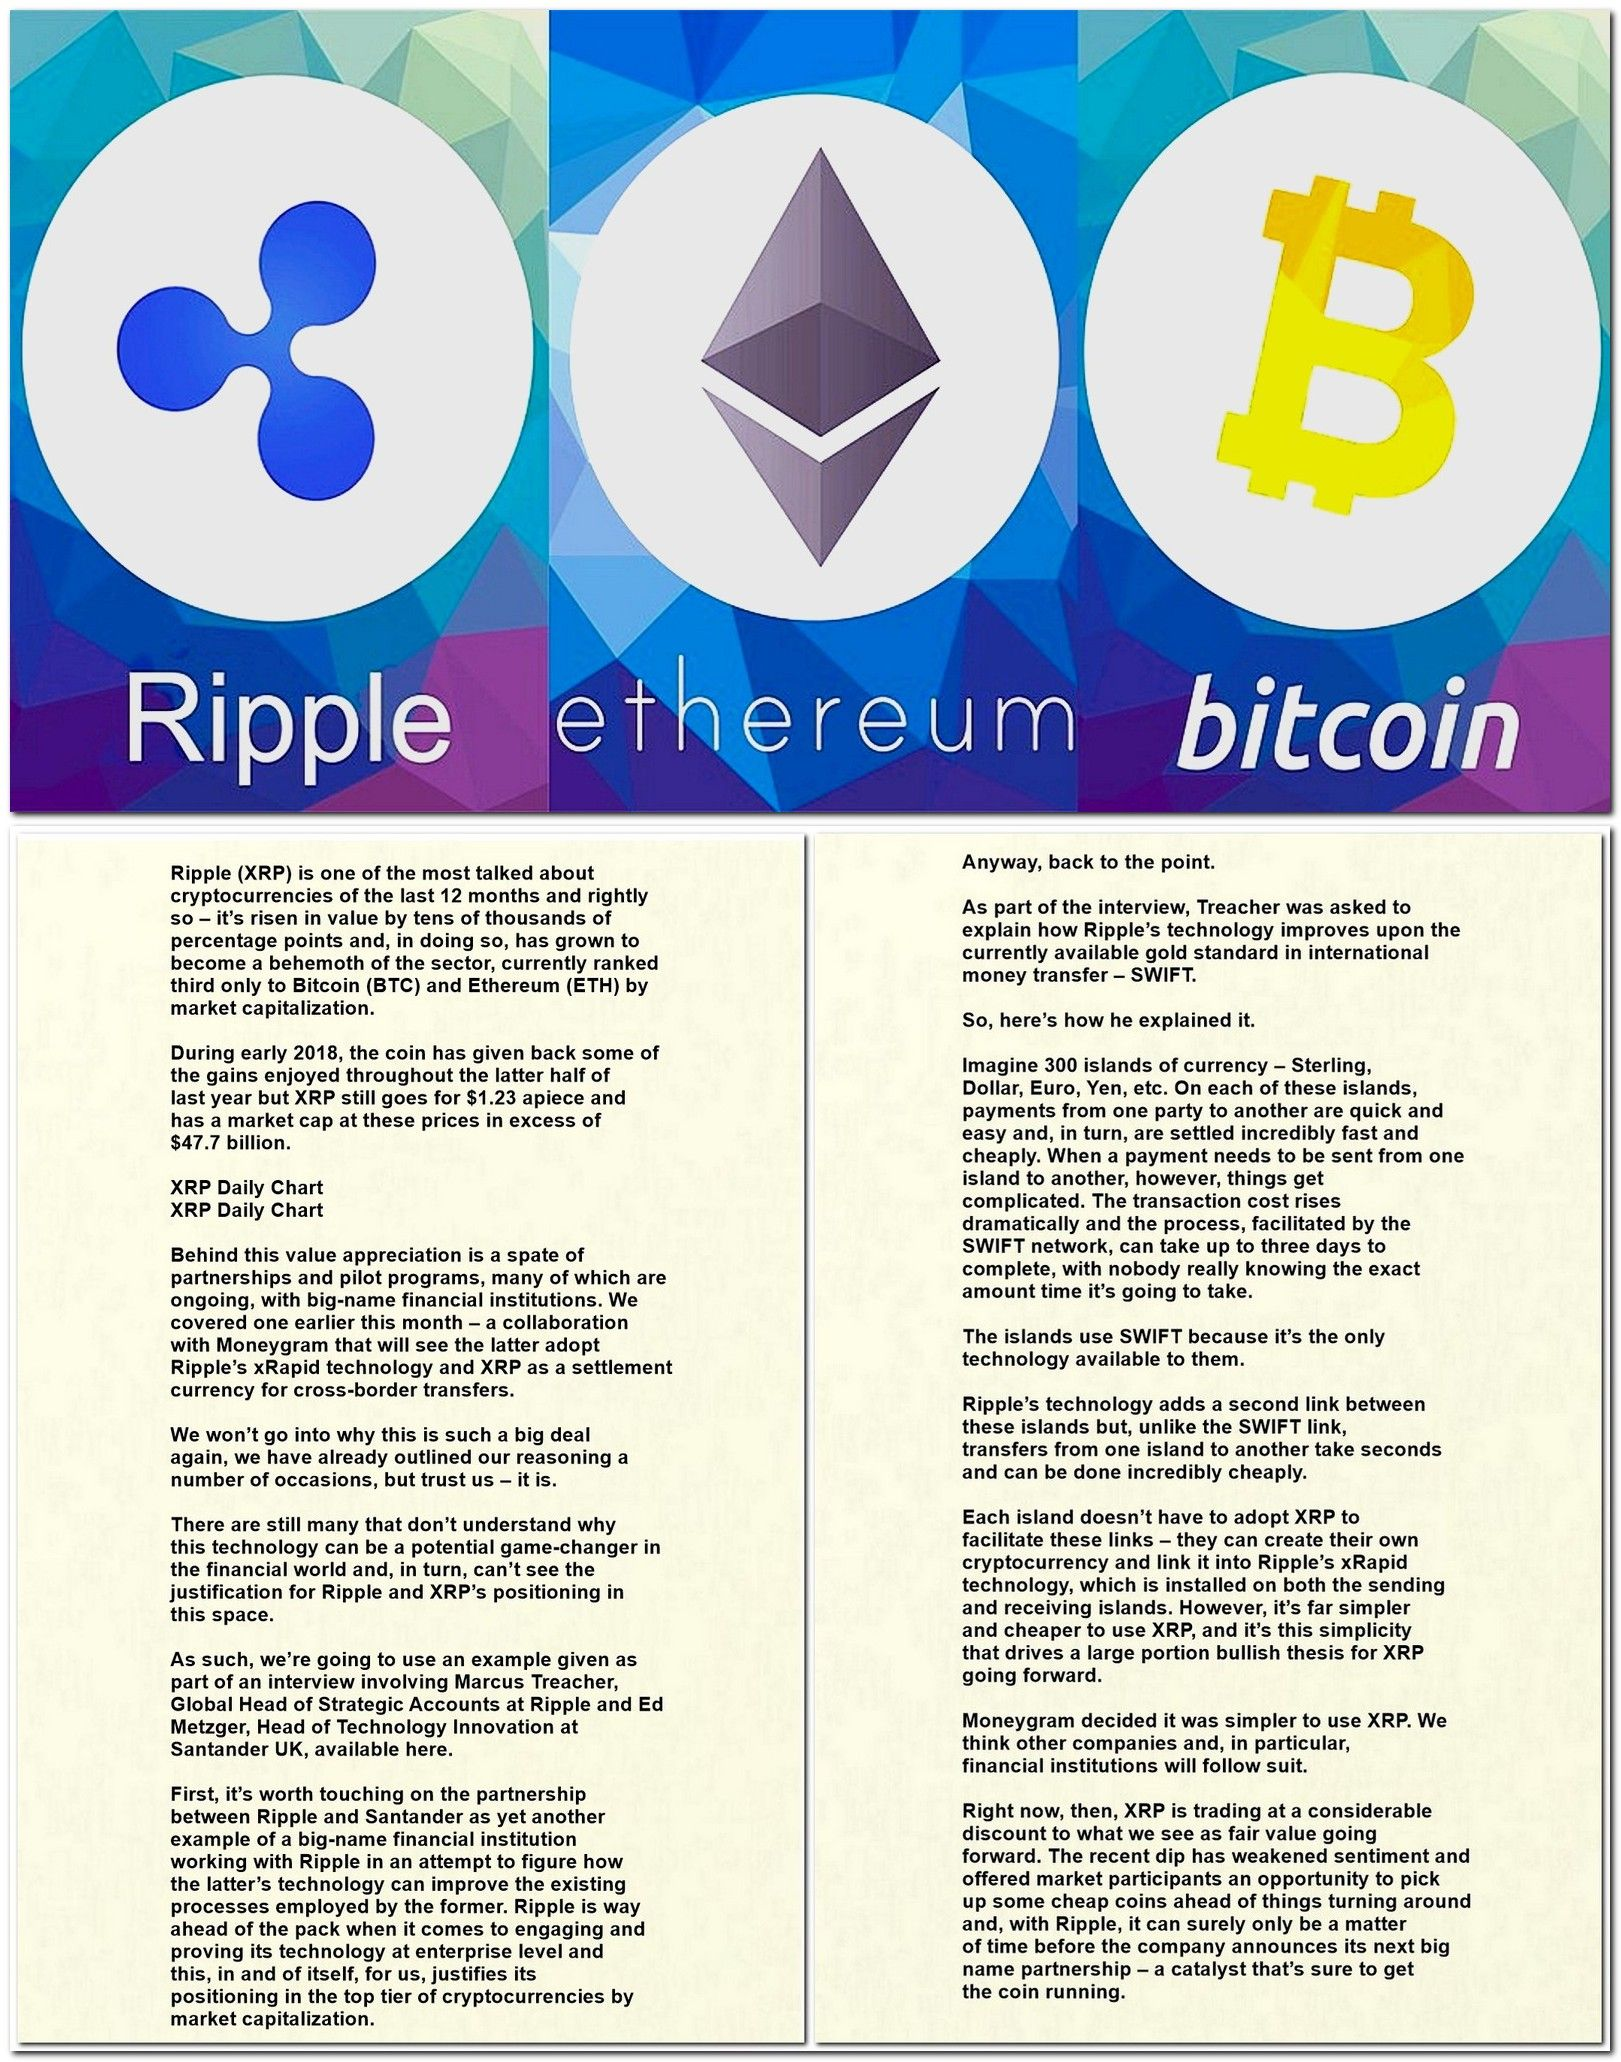 cheap cryptocurrency with potential